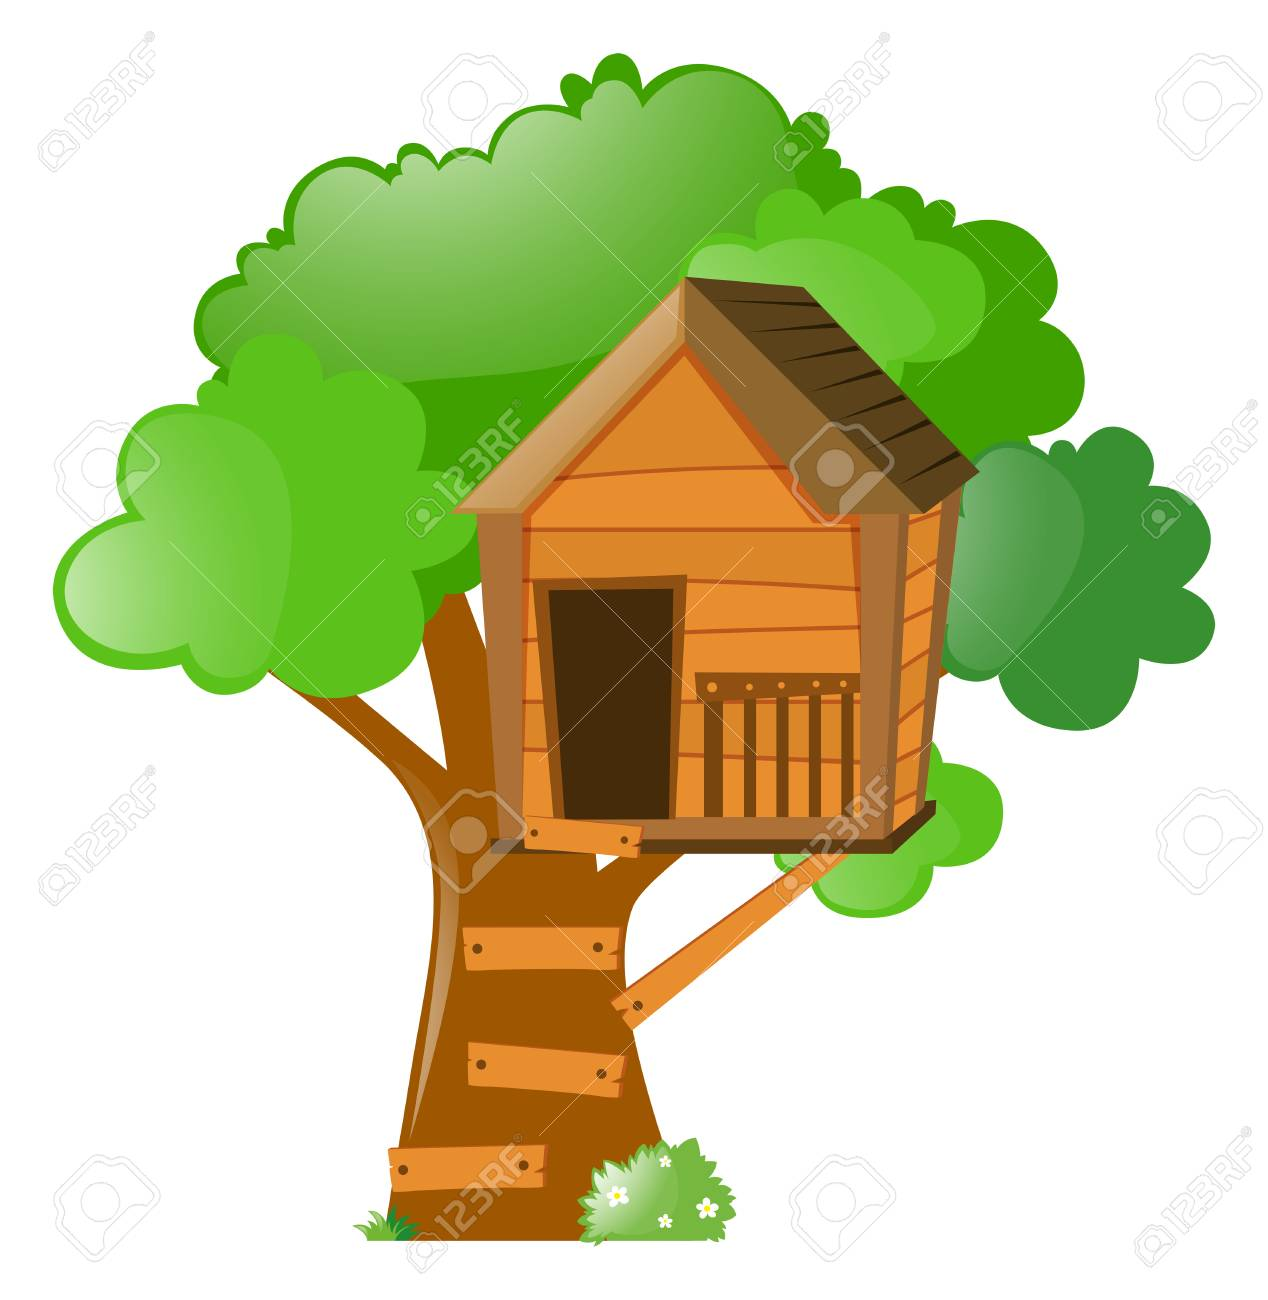 tree with treehouse on it illustration royalty free cliparts rh 123rf com